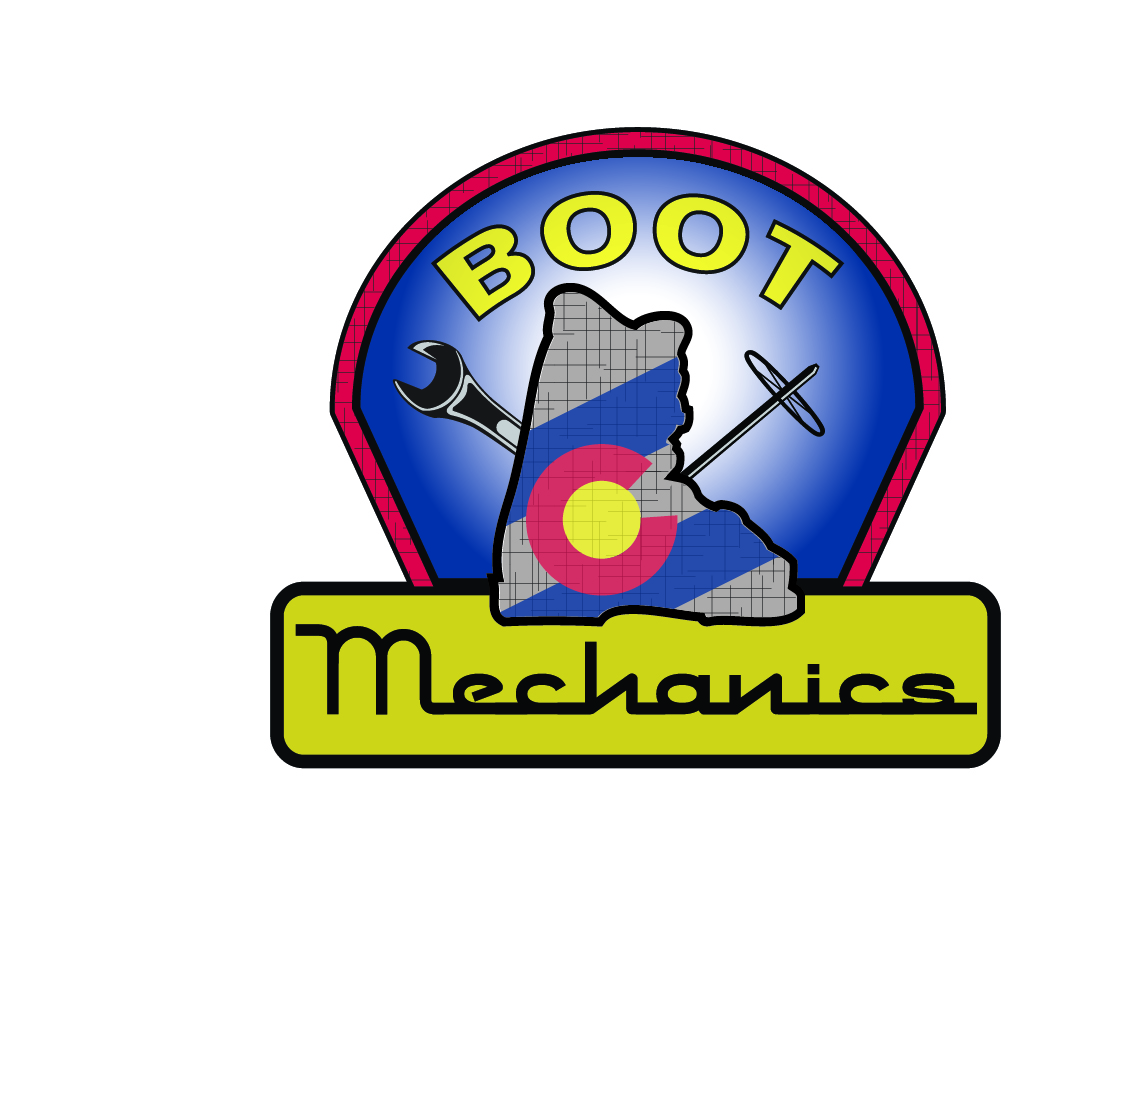 Boot Mechanic logo